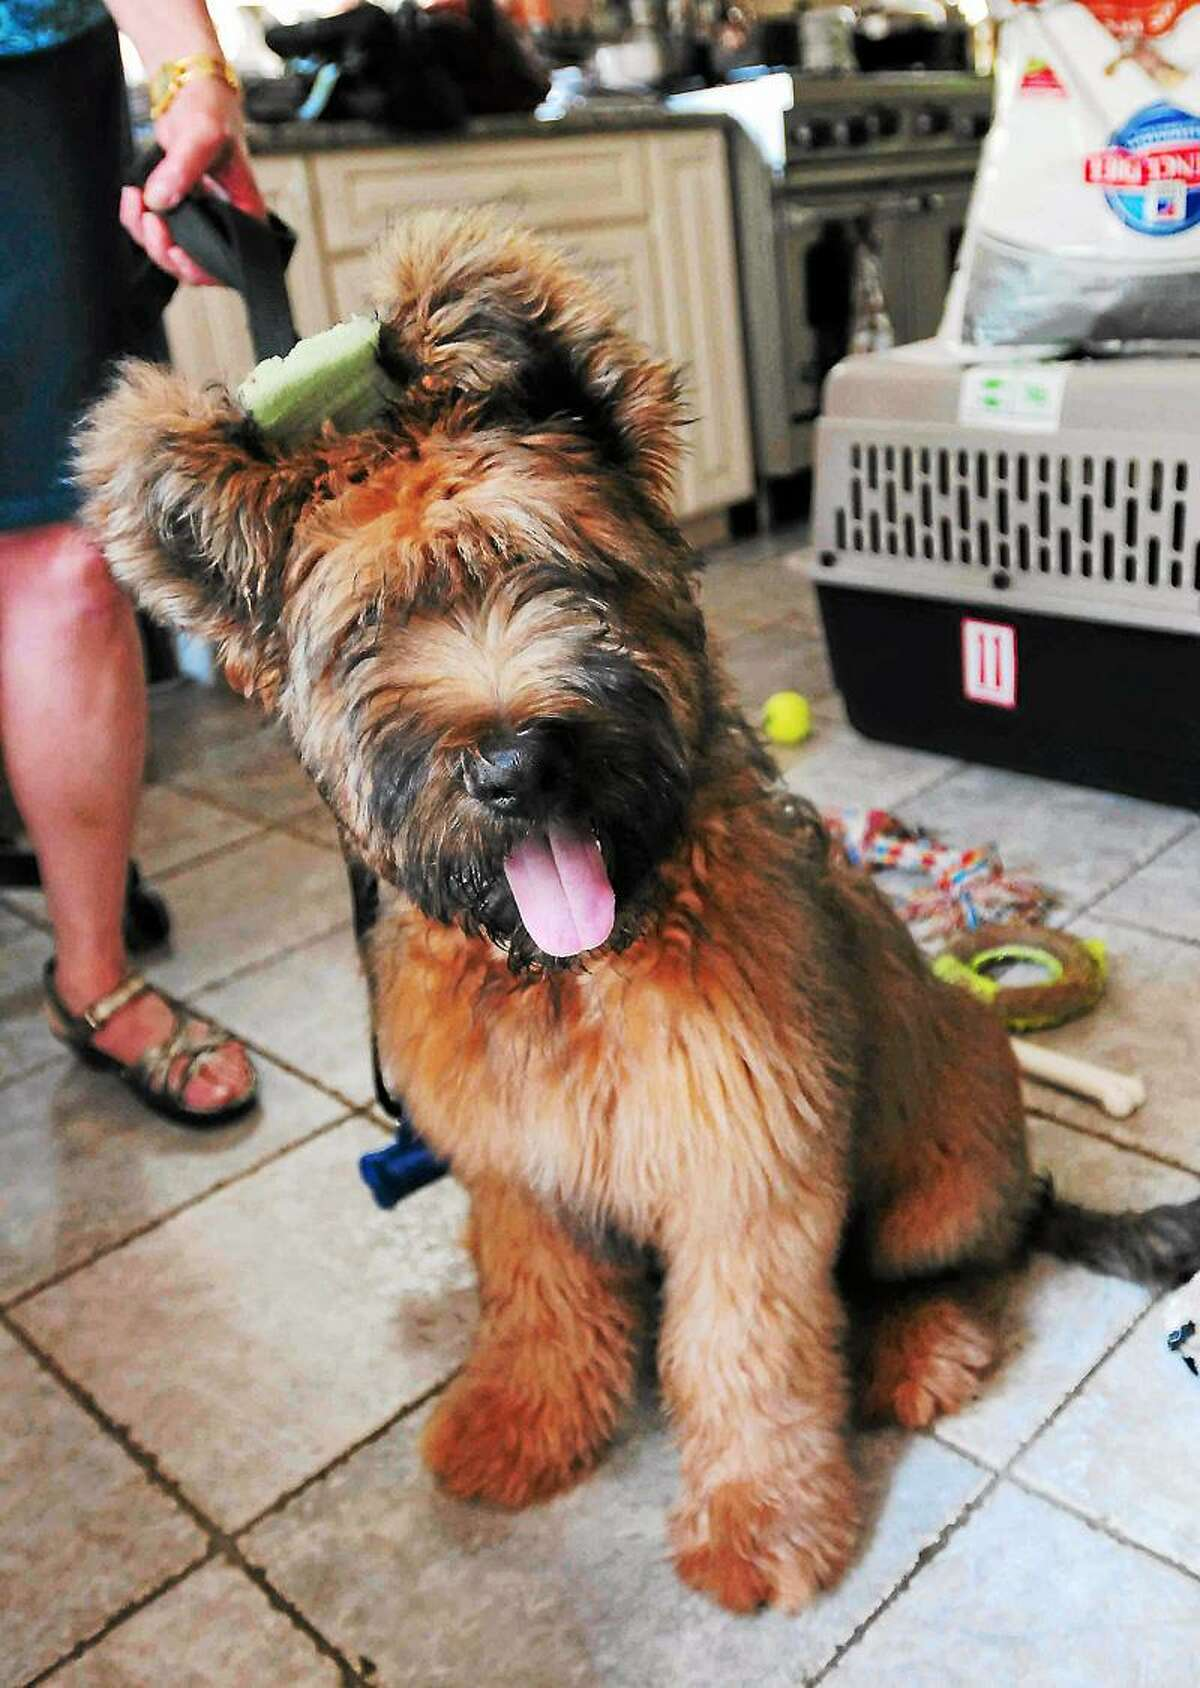 Phineas, a four-month old Briard dog whose owner, Victoria Morrow, was bitten by an unleashed dog. Morrow, who did not want to be in a photograph, criticizes New Haven Animal Shelter supervisor New Haven Police officer Stephanie Johnson for not protecting the public from dangerous unleashed dogs. Peter Hvizdak/Register